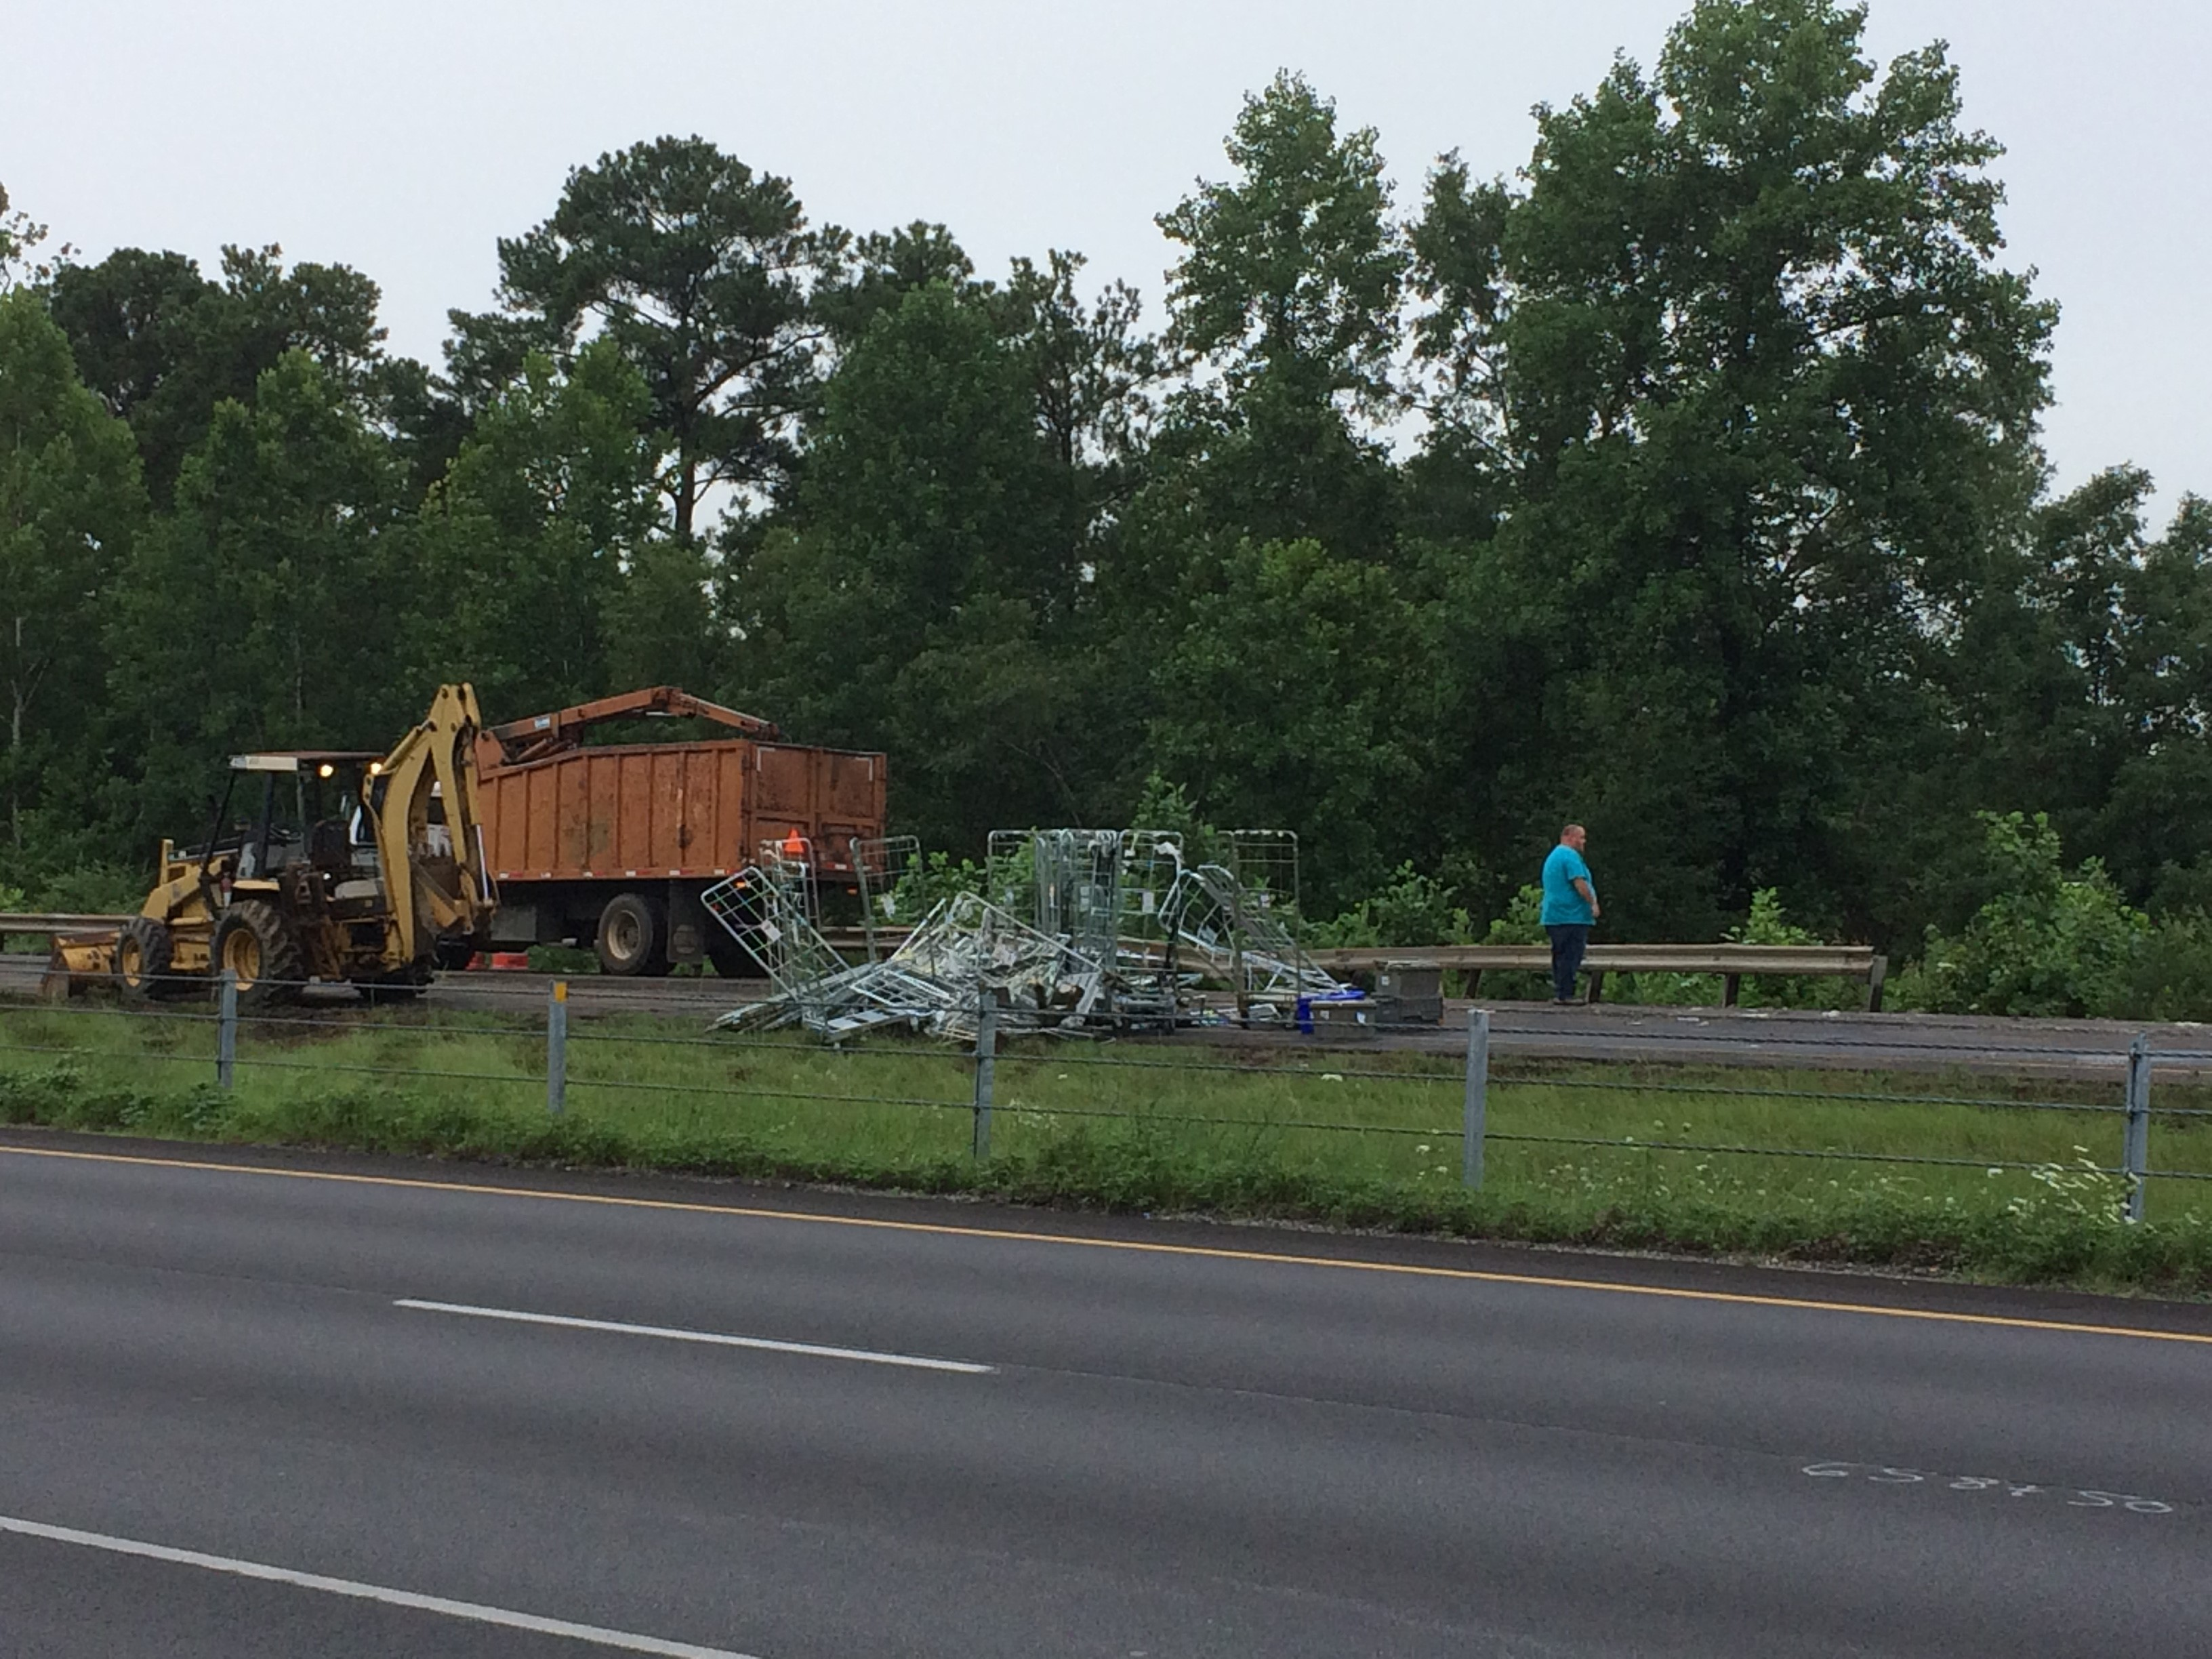 Fatal accident on I-65 shuts down interstate, claims 1 life